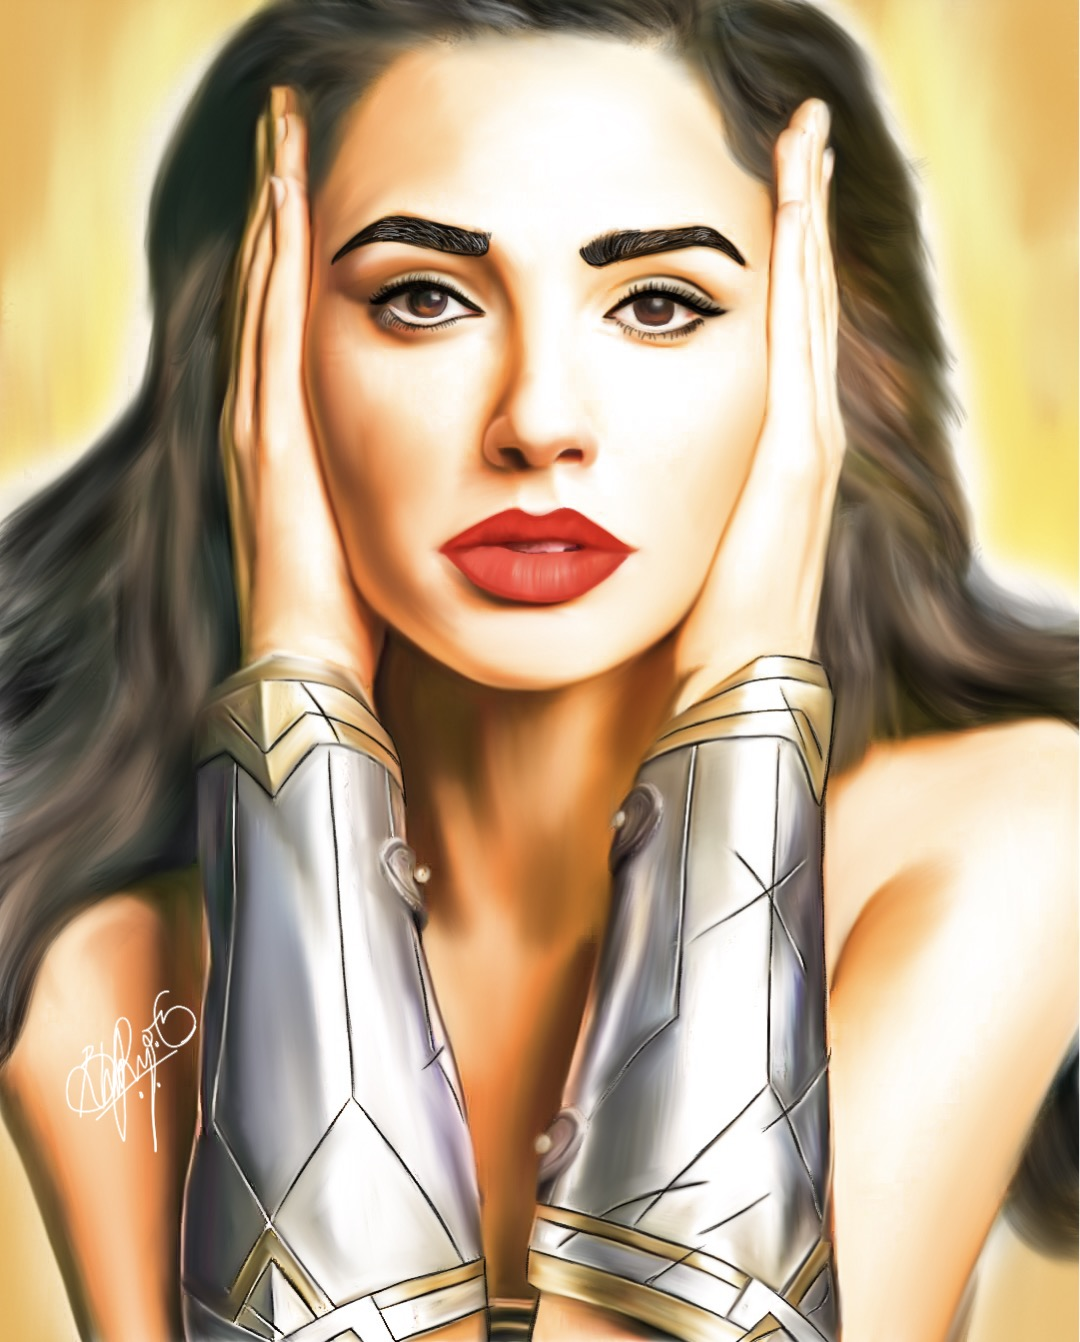 Wonder Woman Digital Art